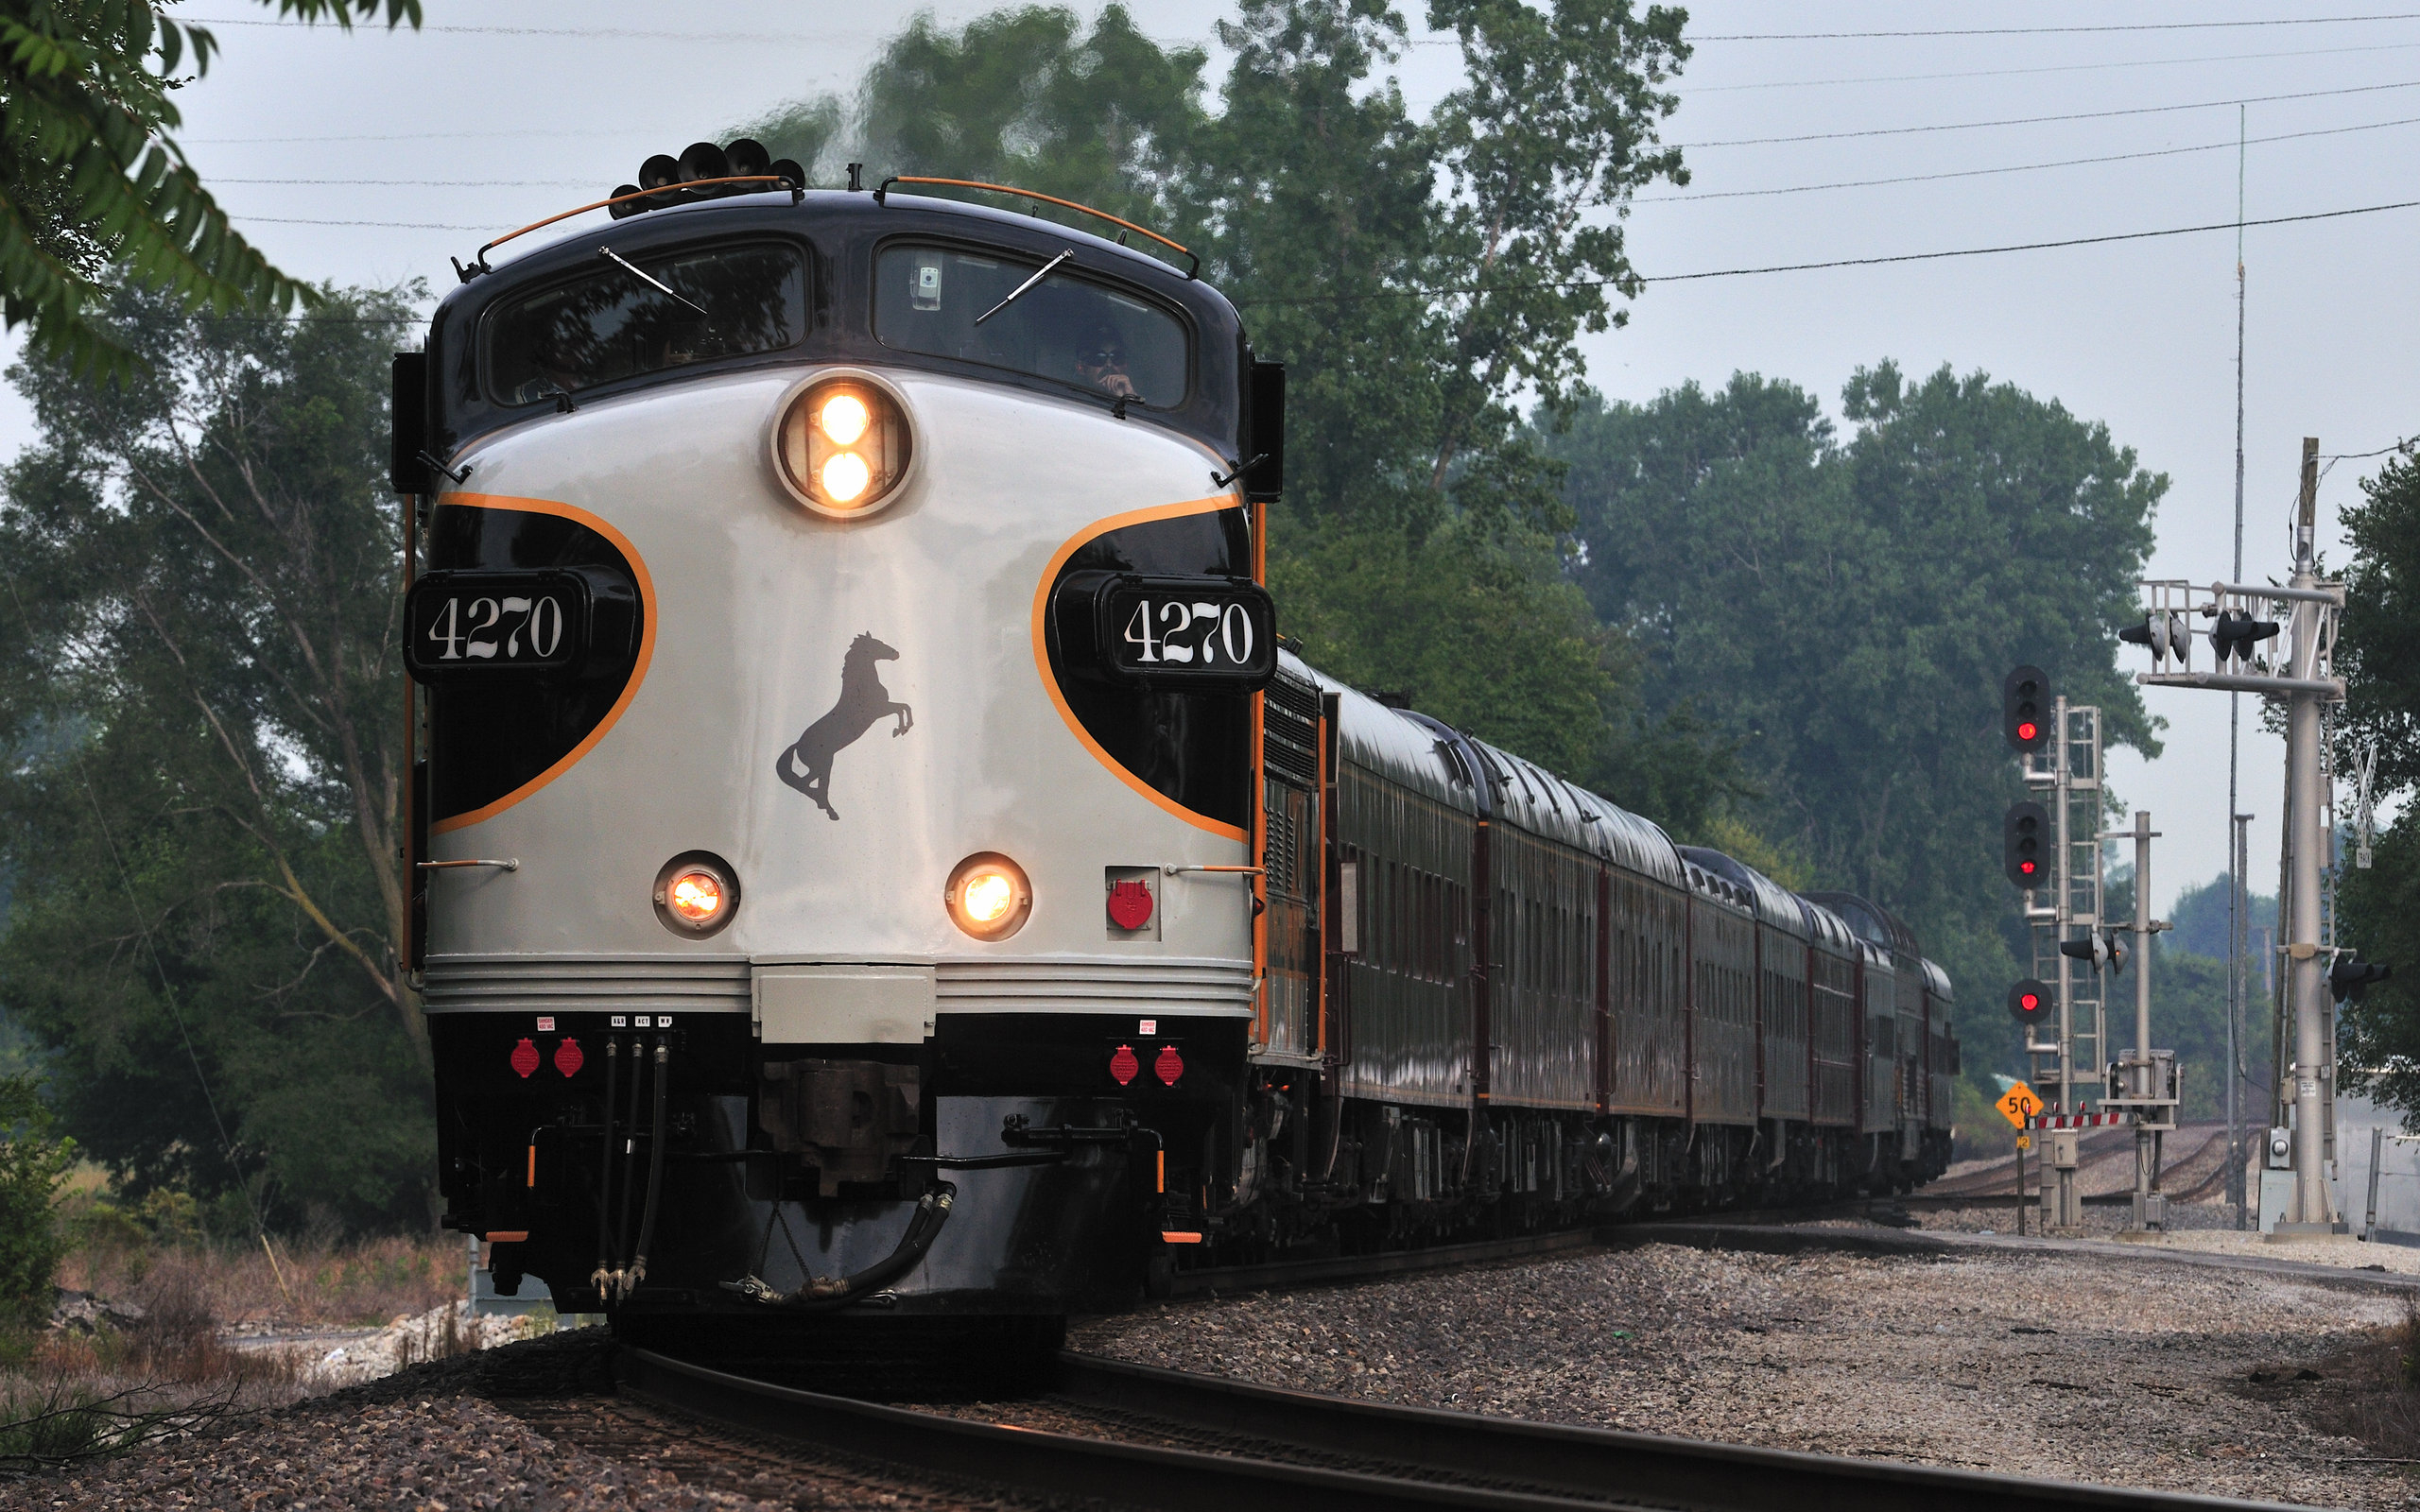 Passenger Train wallpapers and images 2560x1600